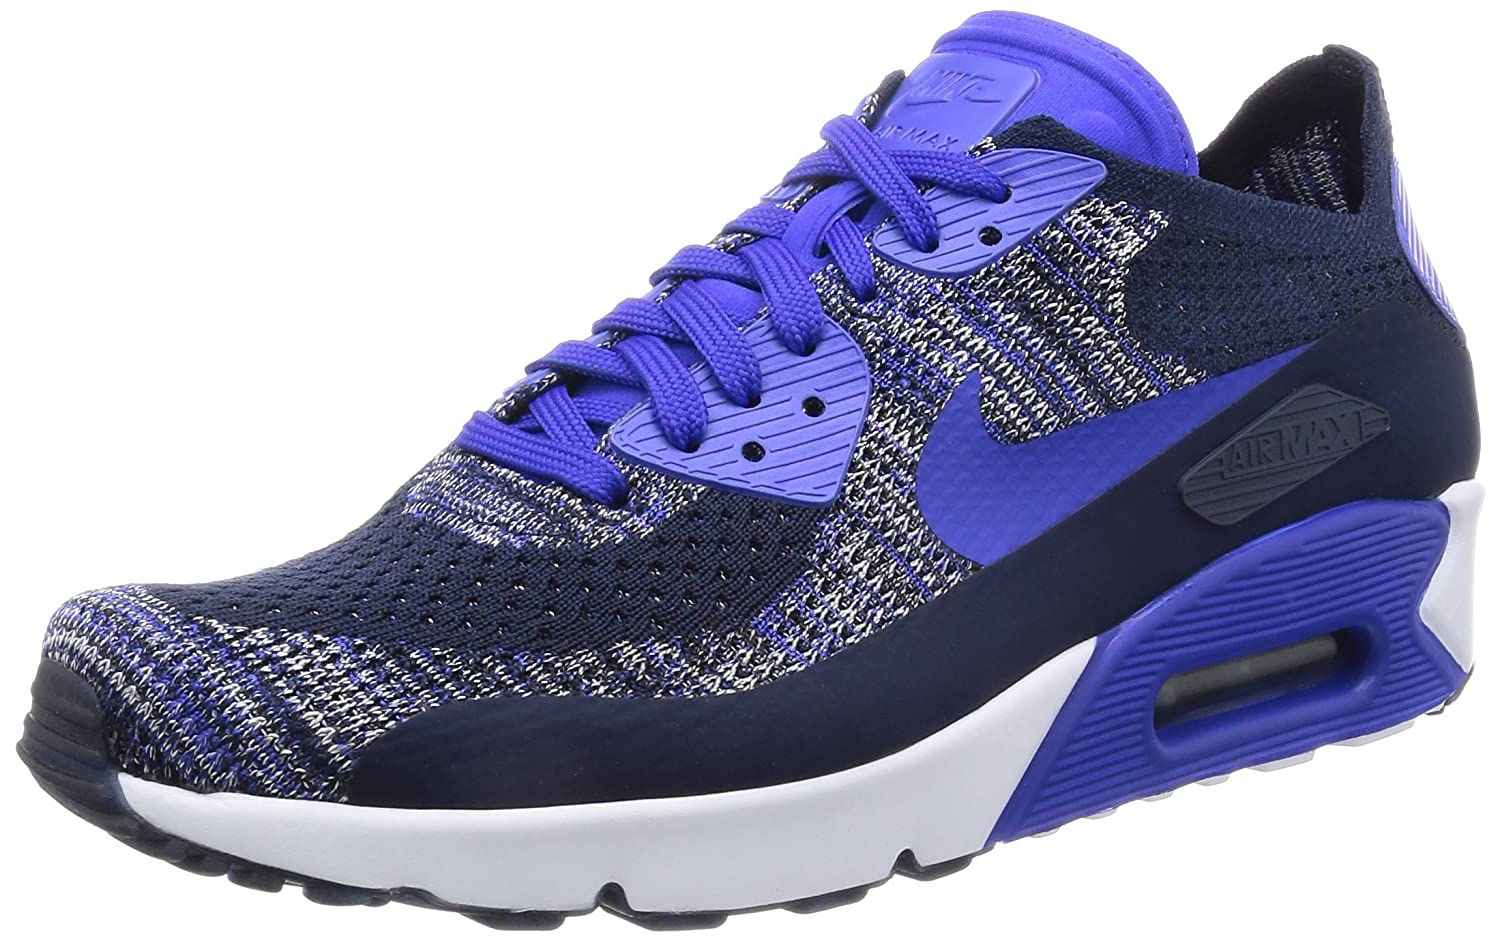 ecbd244f95 Amazon.com | Nike Men's Air Max 90 Ultra 2.0 Flyknit, College  Navy/Paramount Blue, 9.5 M US | Fashion Sneakers